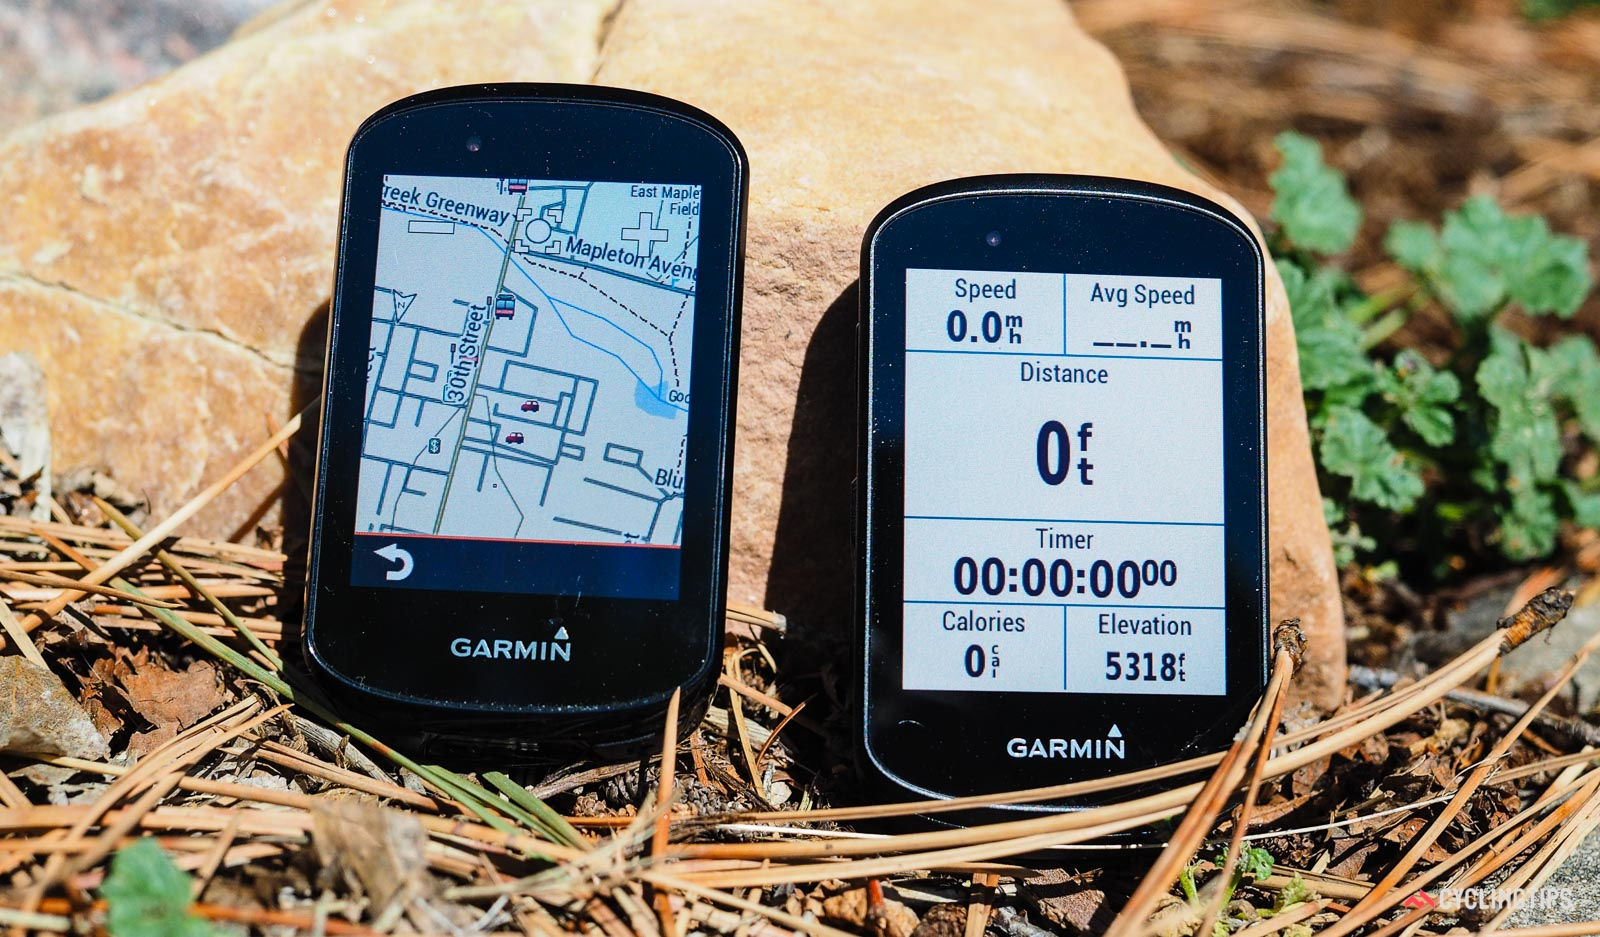 Garmin Edge 530 of 830